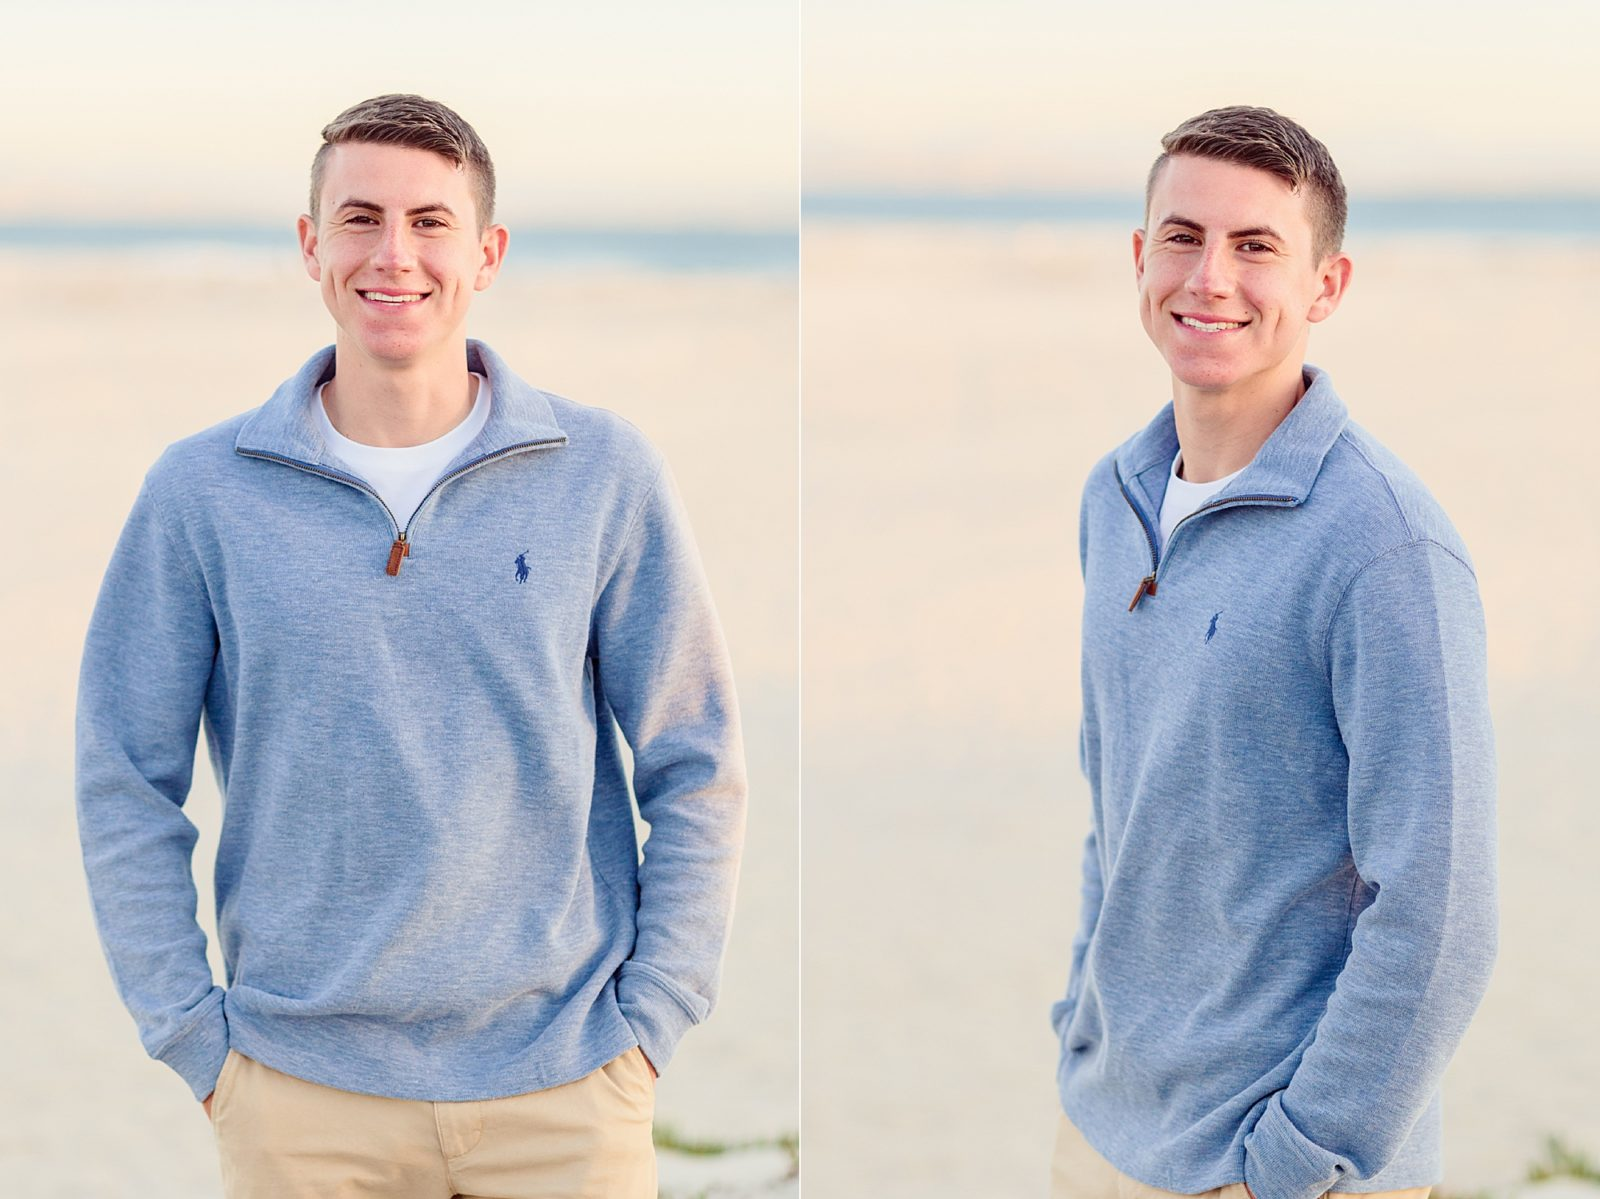 Senior Photography | Senior Photography San Diego